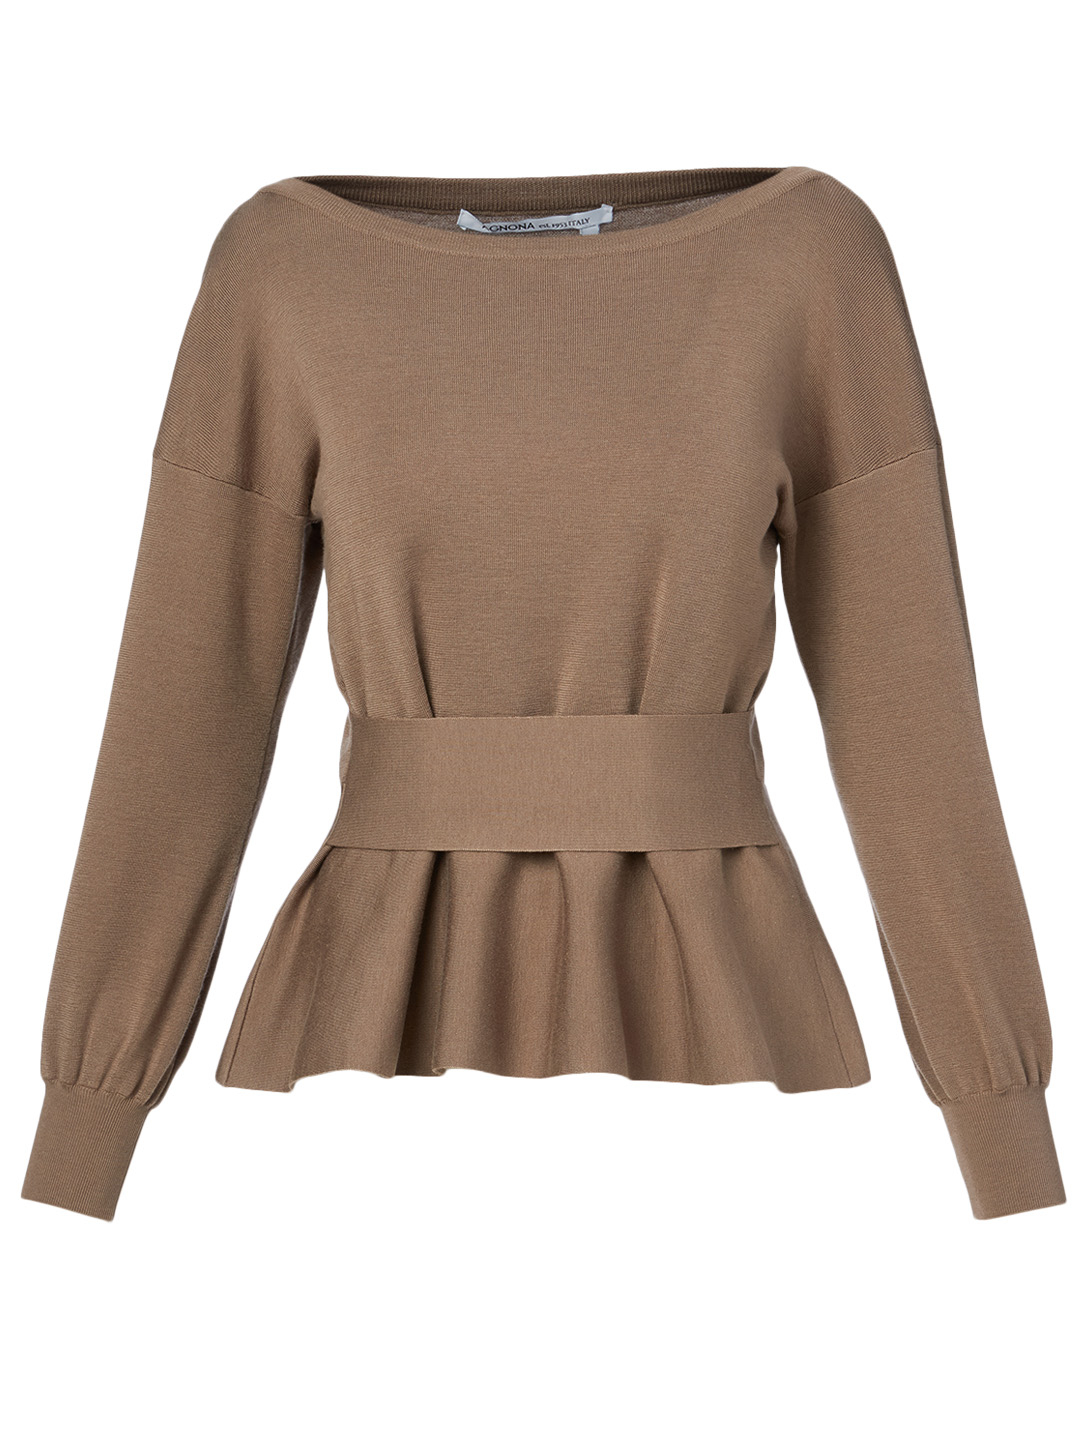 AGNONA Wool And Silk Peplum Top Women's Beige